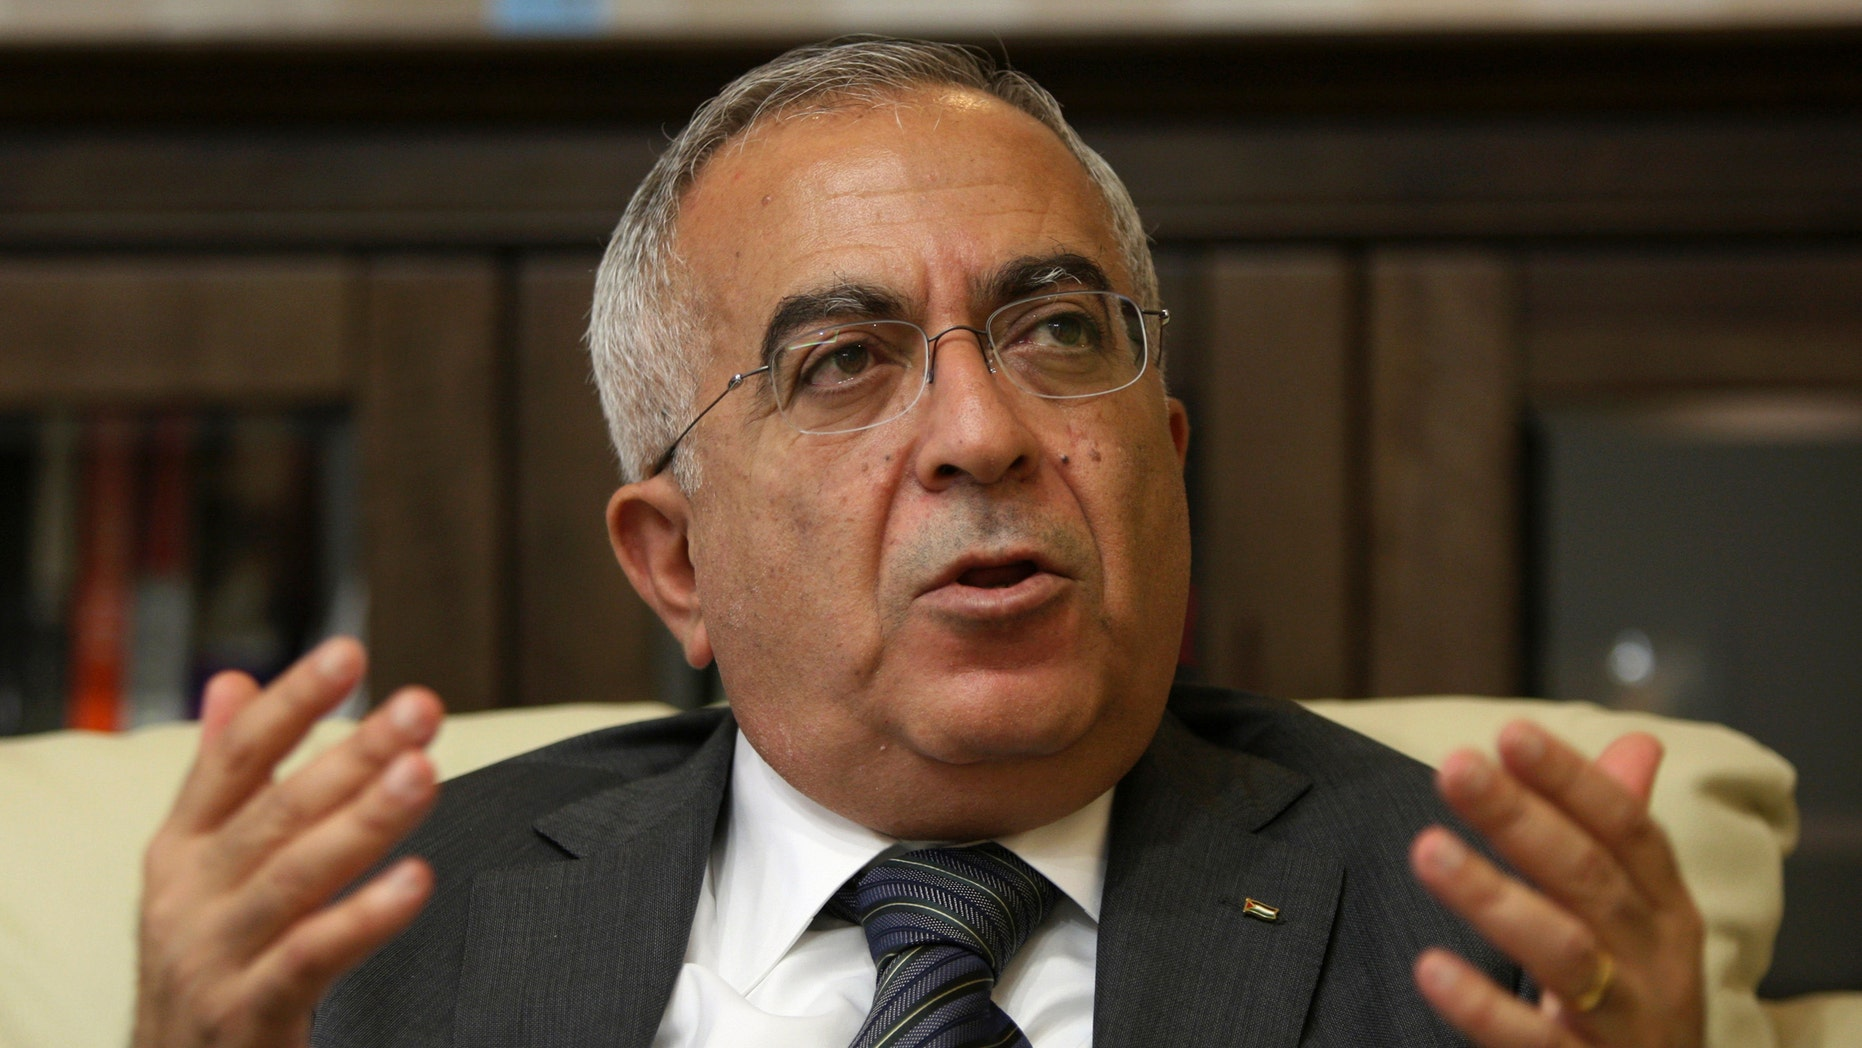 In this June 28, 2011 file photo, Palestinian Prime Minister Salaam Fayyad speaks during an interview with The Associated Press in the West Bank city of Ramallah.